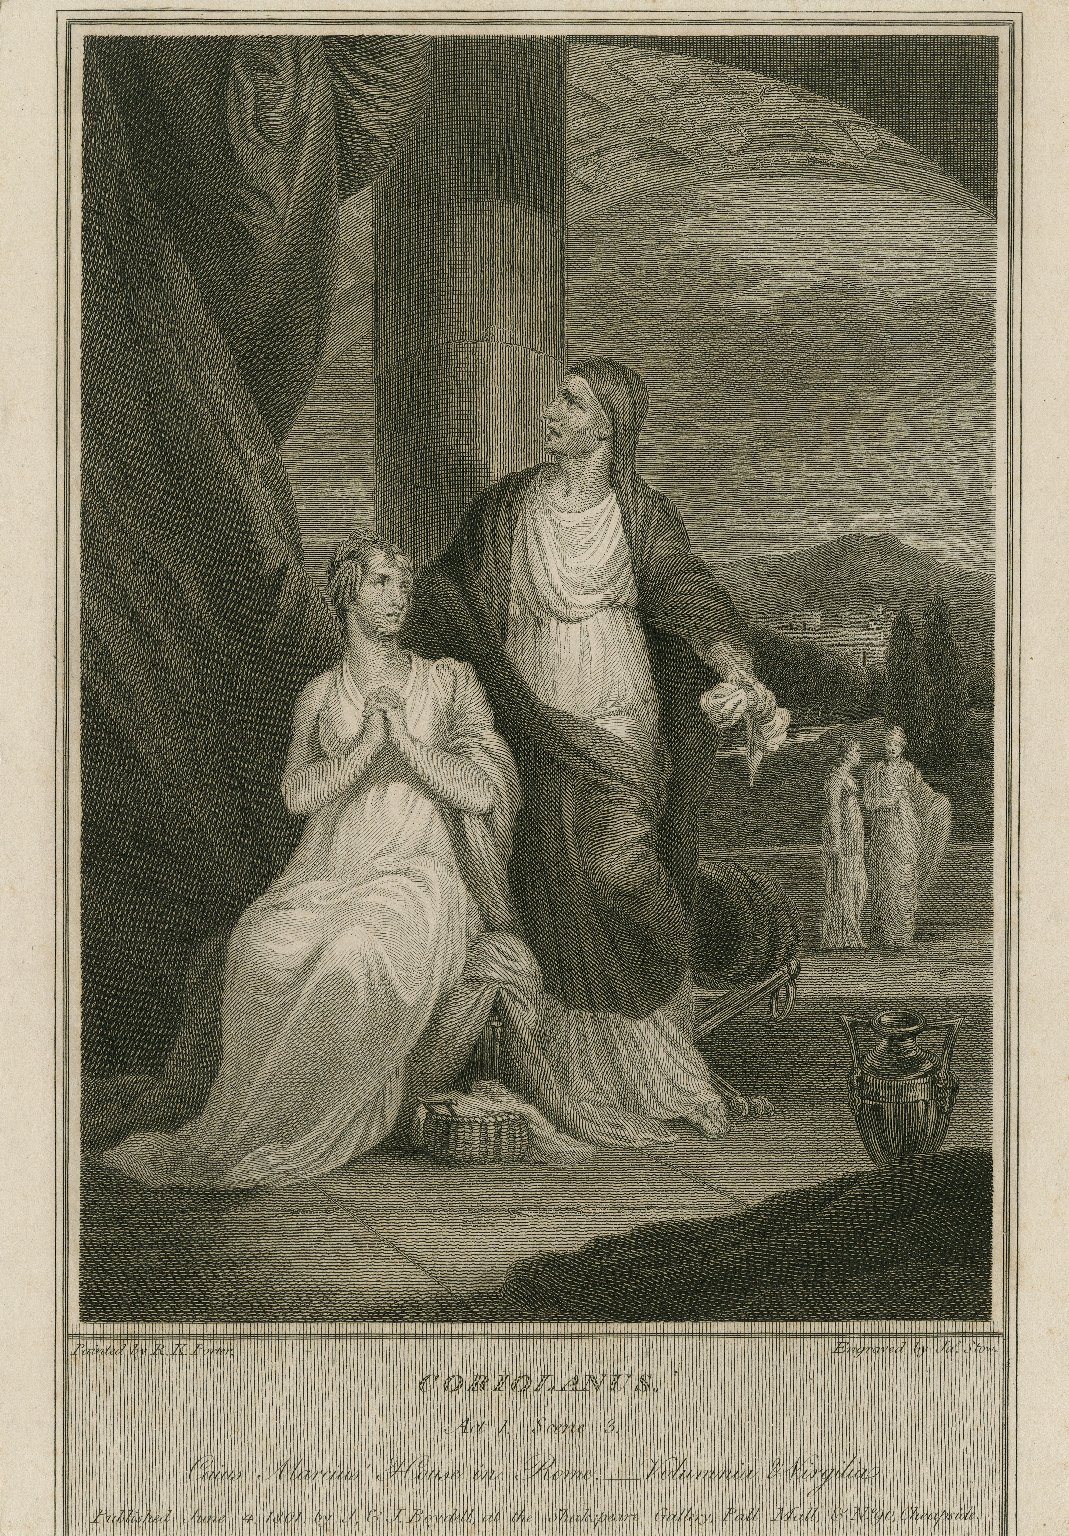 Coriolanus, act 1, scene 3, Caius Marcius' house in Rome, Volumnia & Virgilia [graphic] / painted by R.K. Porter ; engraved by Jas. Stow.